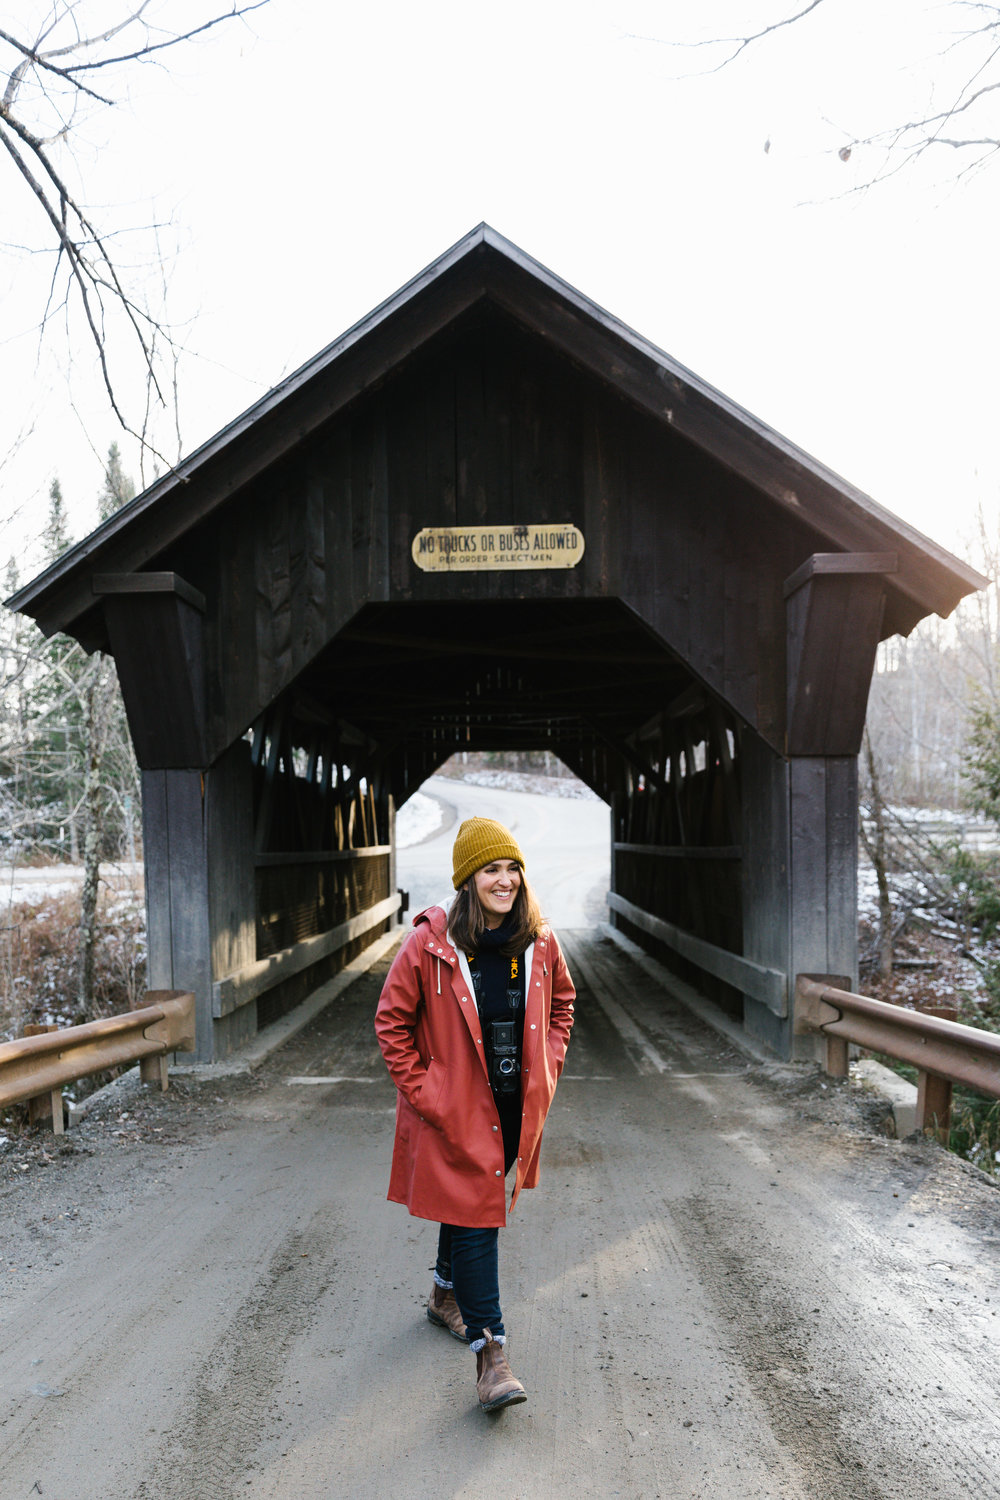 Cheesin' at the Goldbrook Covered Bridge